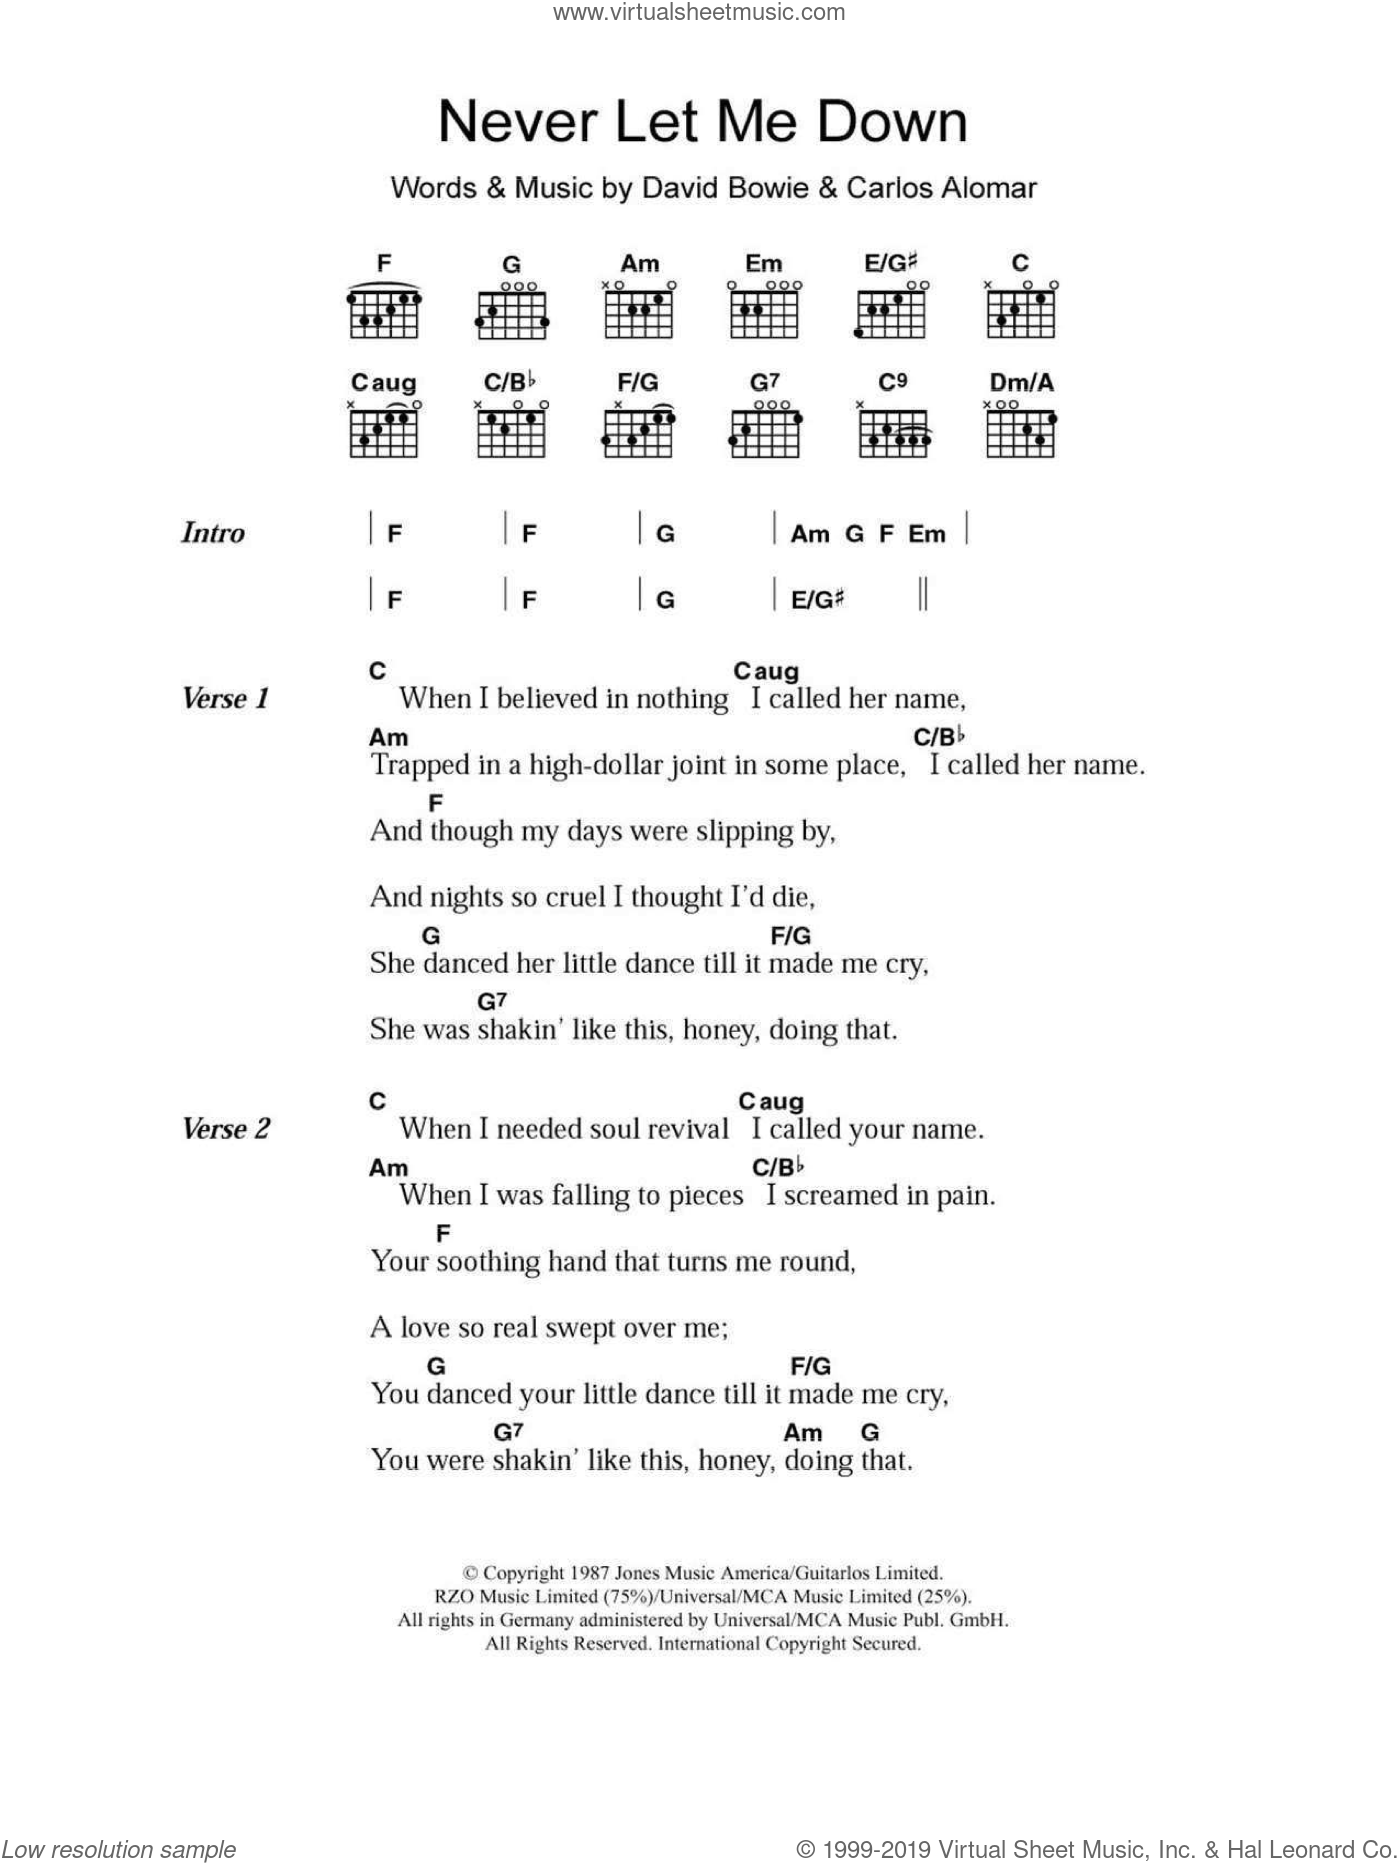 Bowie - Never Let Me Down sheet music for guitar (chords) [PDF]